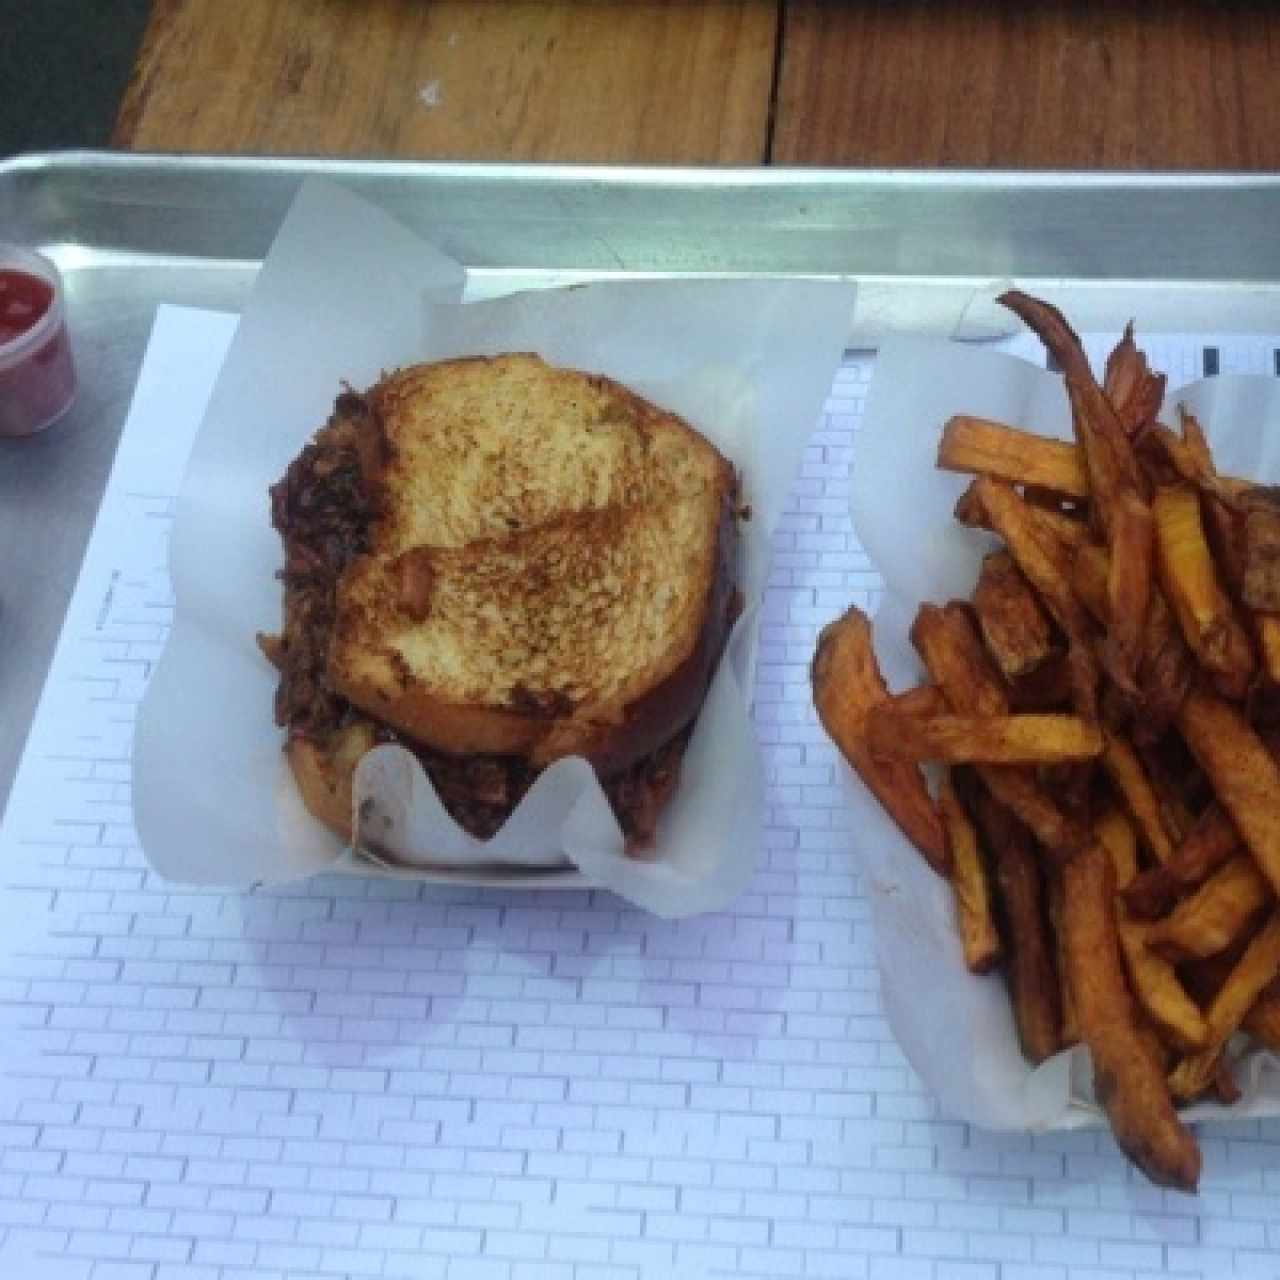 Bbq sandwich y babata french fries